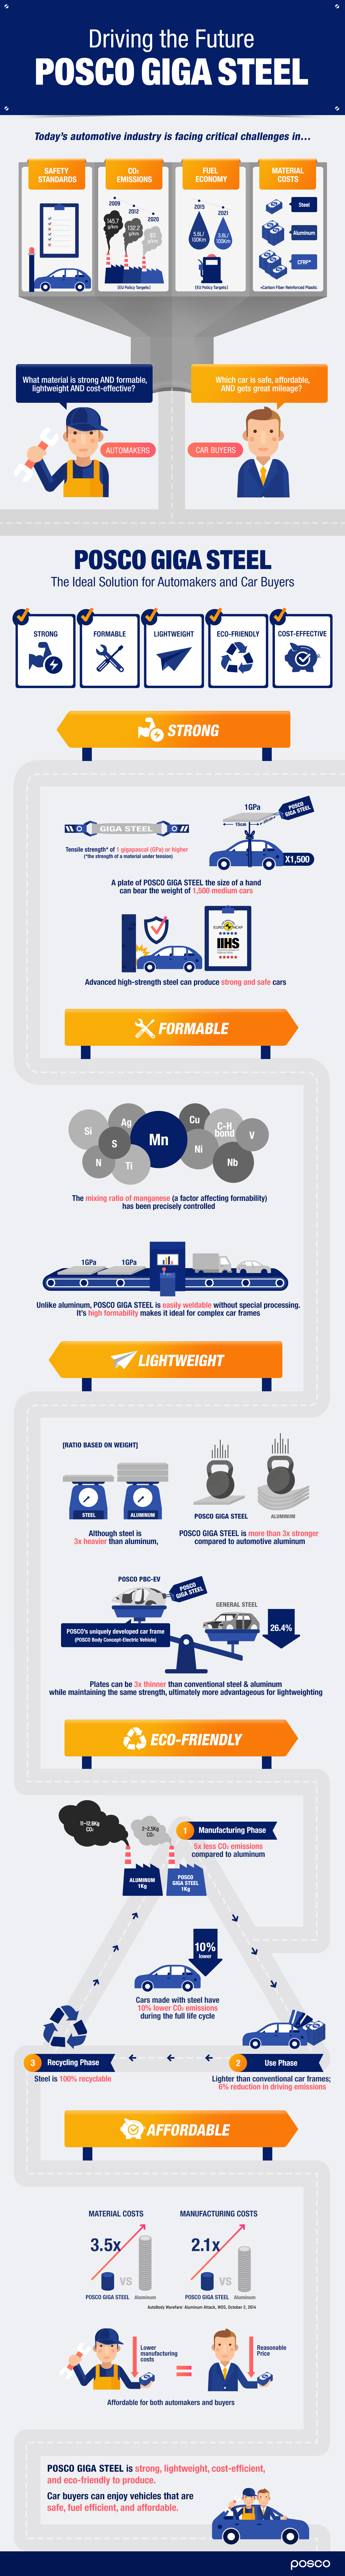 Infographic: Driving the Future with POSCO GIGA STEEL